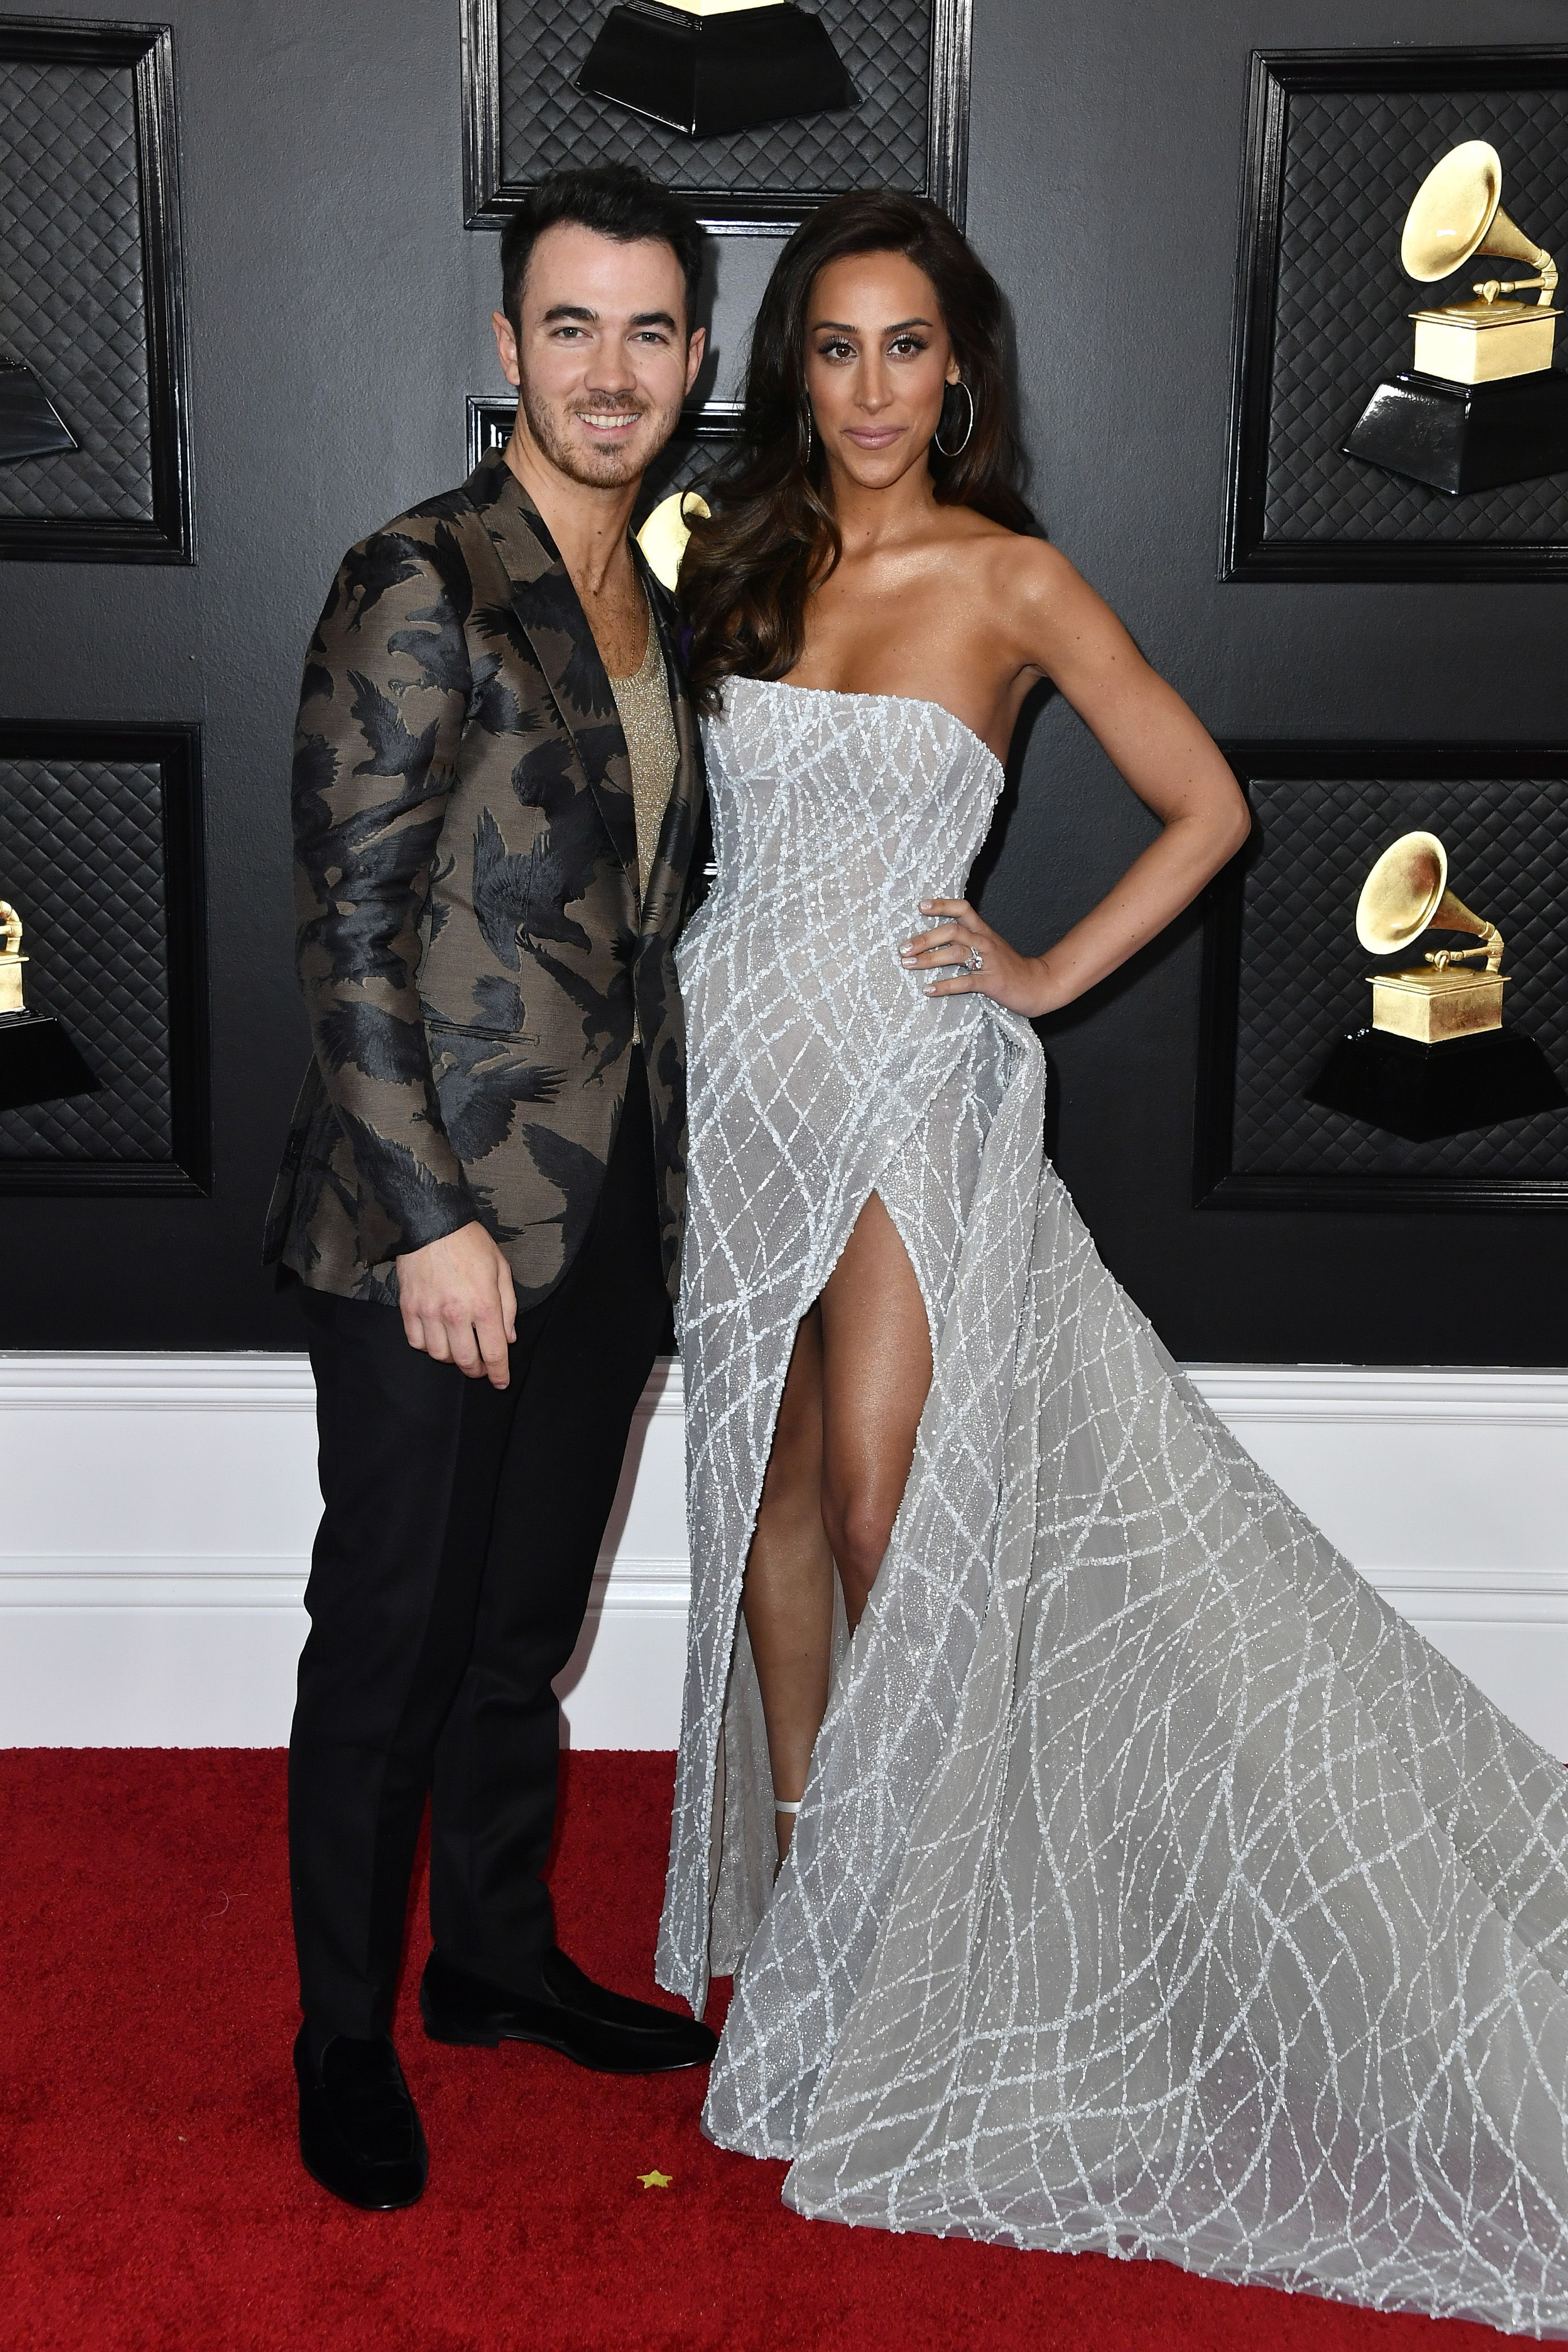 Alert: the J-Sisters (oh, and the Jonas Brothers) Just Arrived at the Grammy Awards